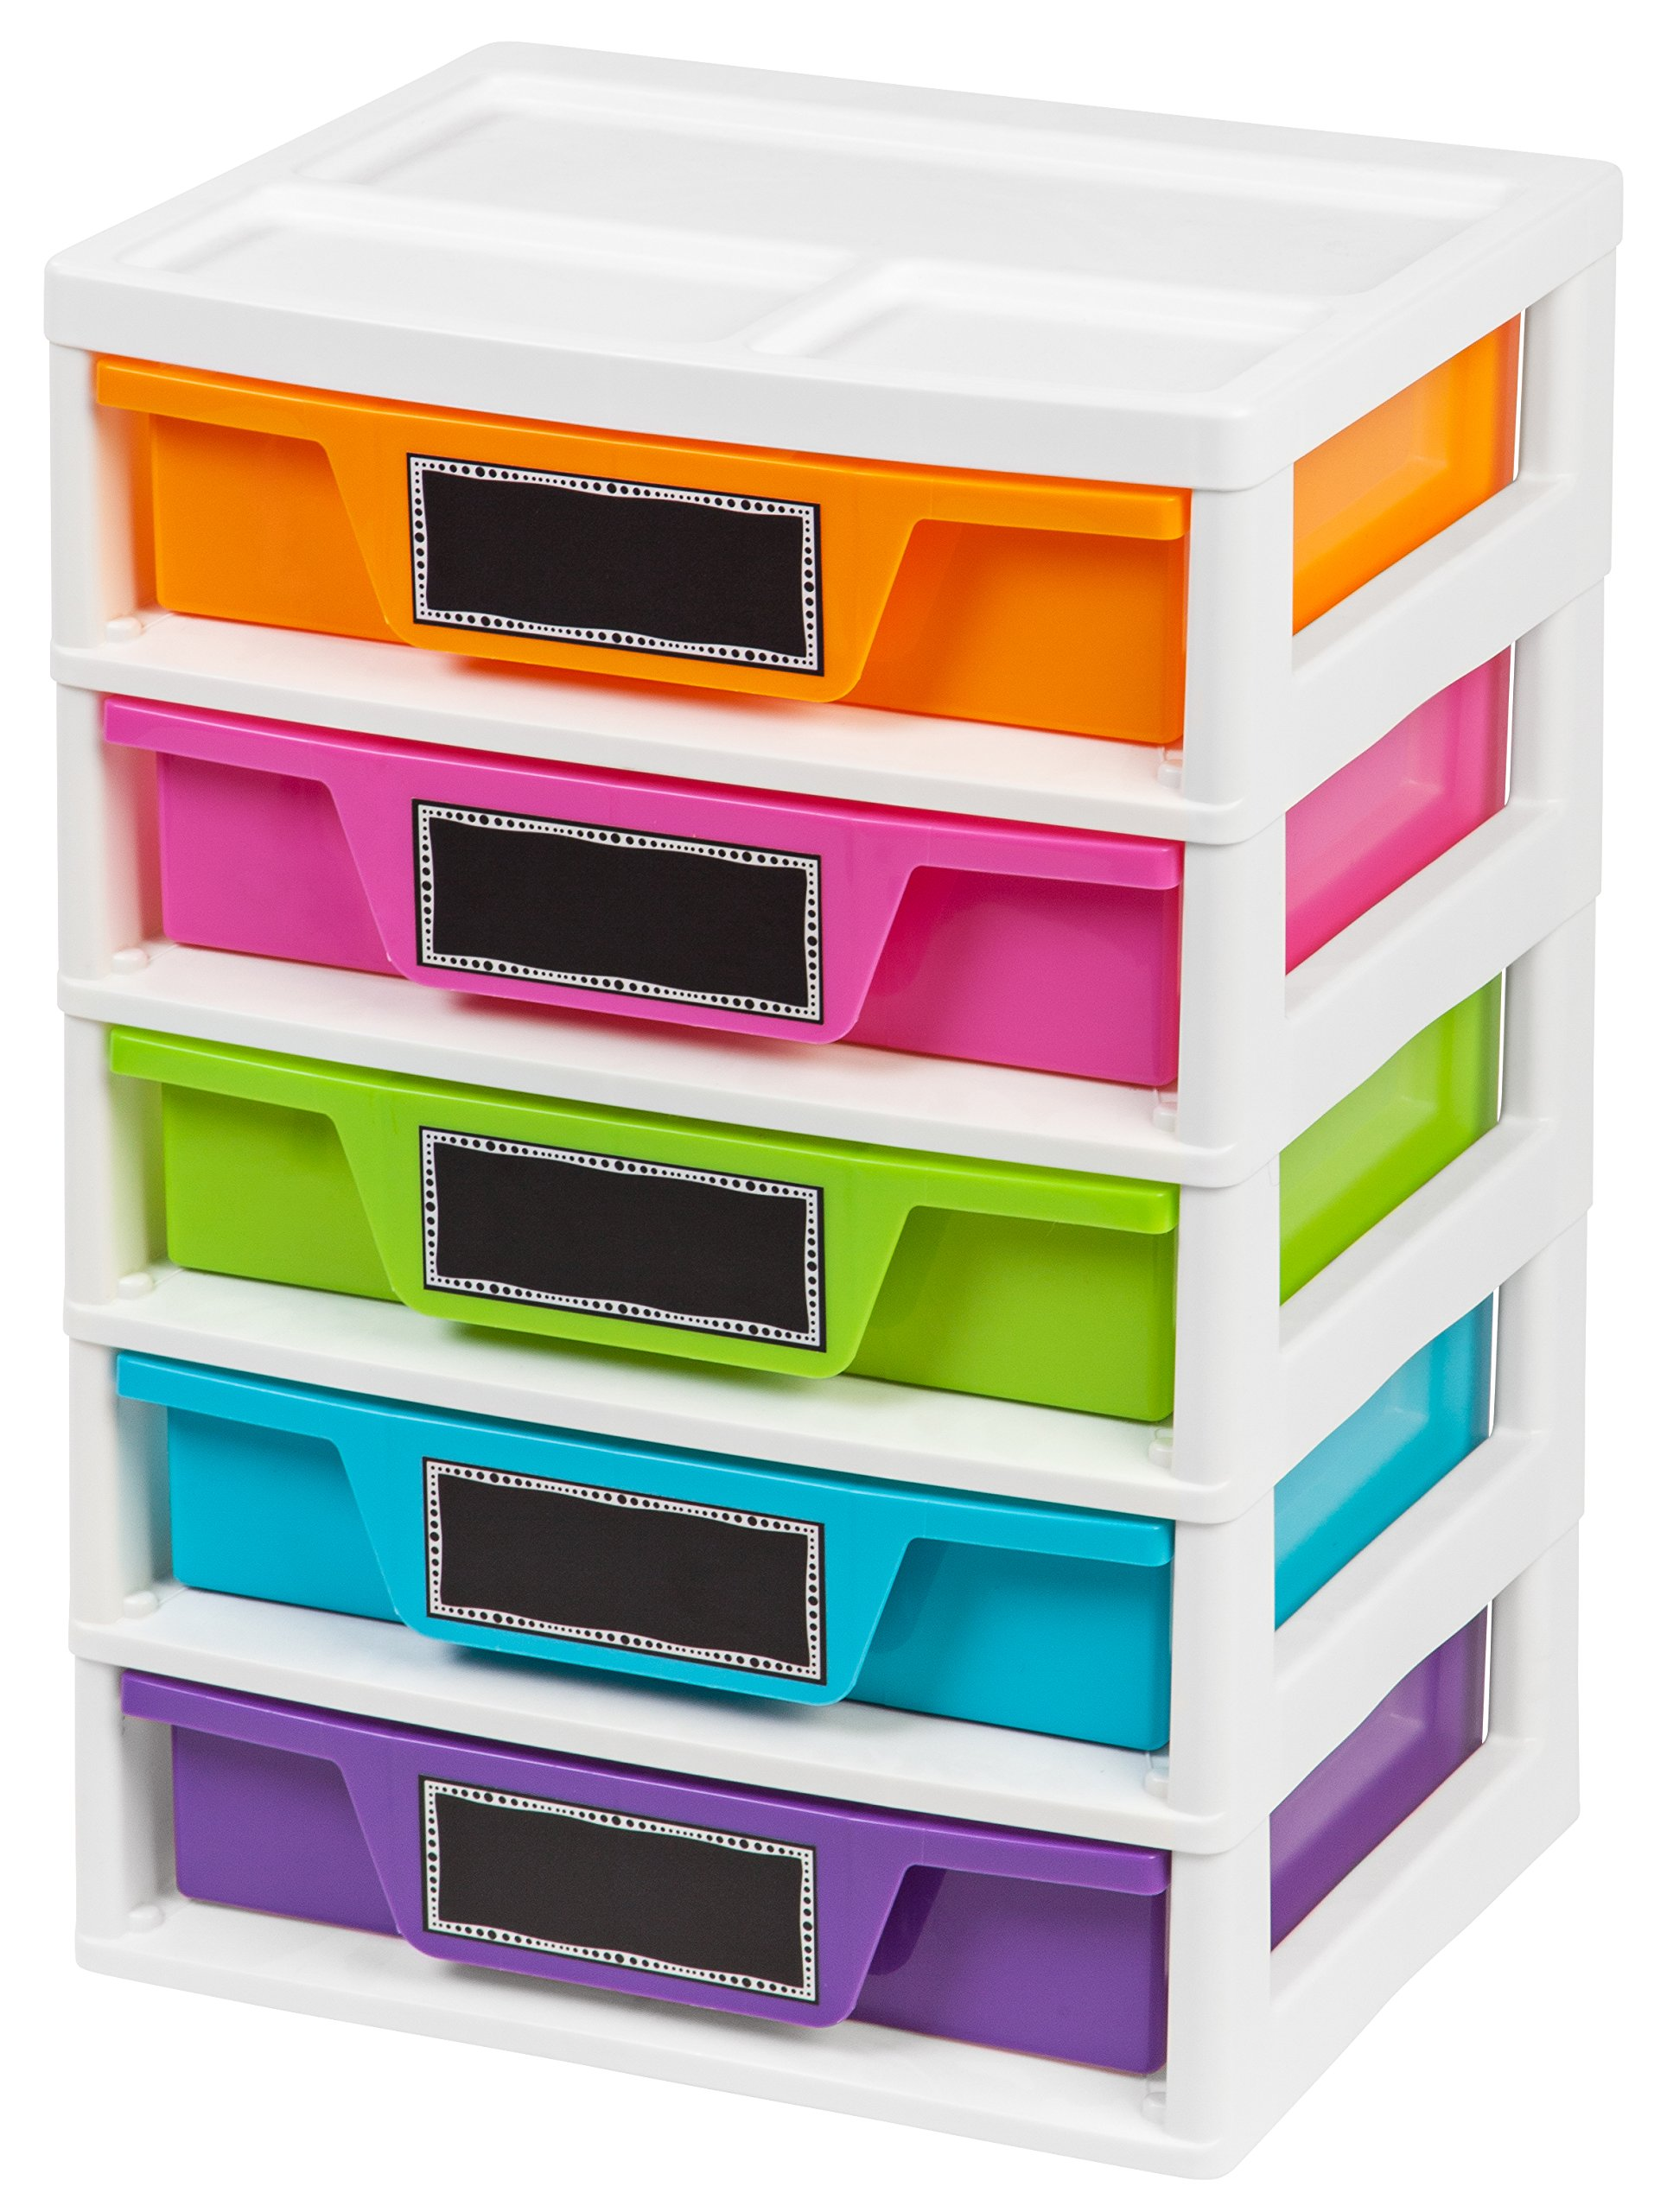 IRIS USA, Inc. PJD-305 5 Drawer Storage & Organizer Chest, Assorted Colors, Girl, Pastel by IRIS USA, Inc.